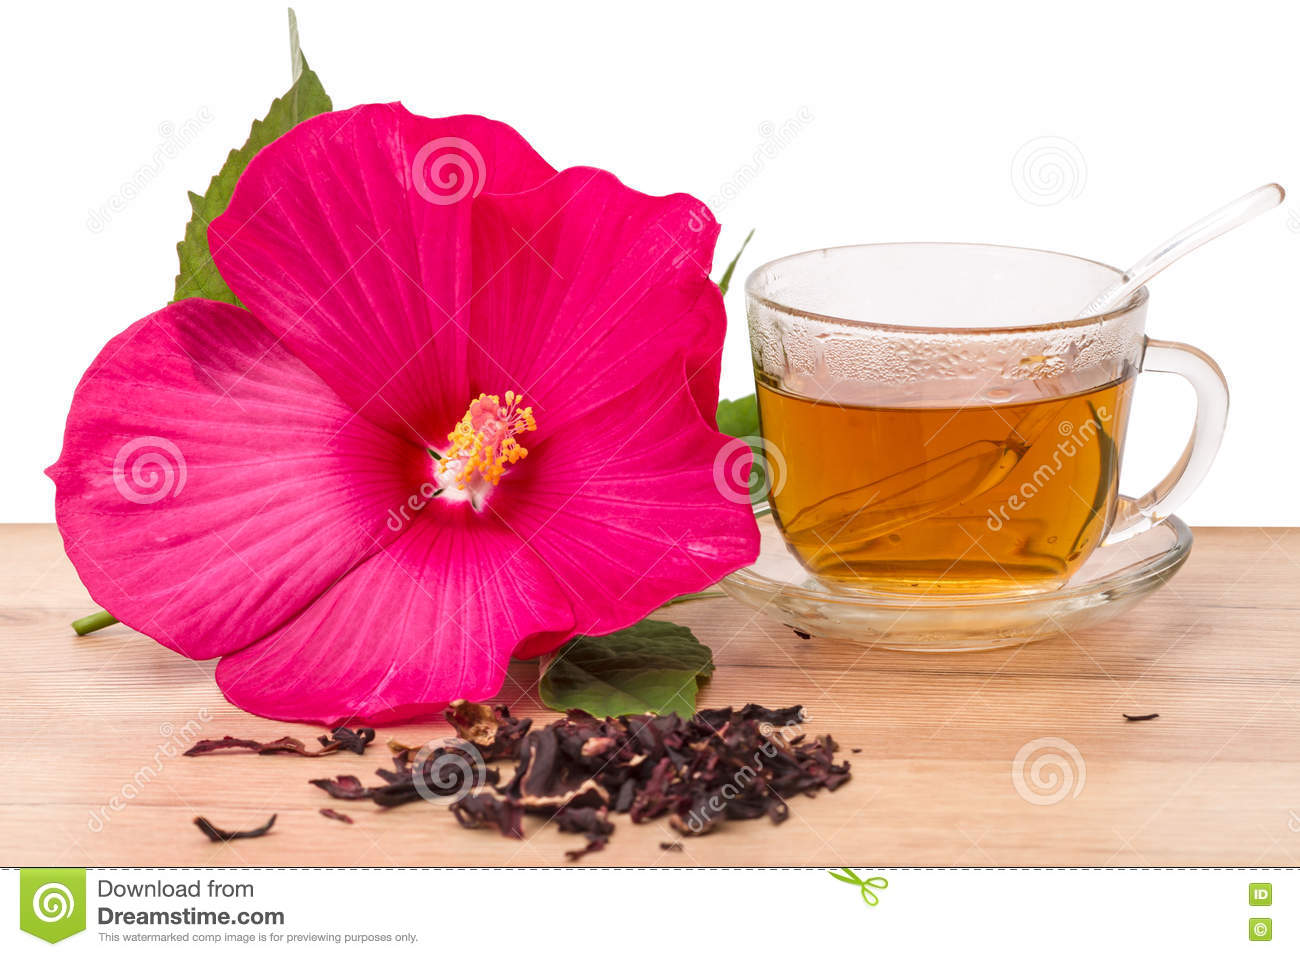 Hibiscus and flower tea stock photo image of background 76999532 hibiscus and flower tea izmirmasajfo